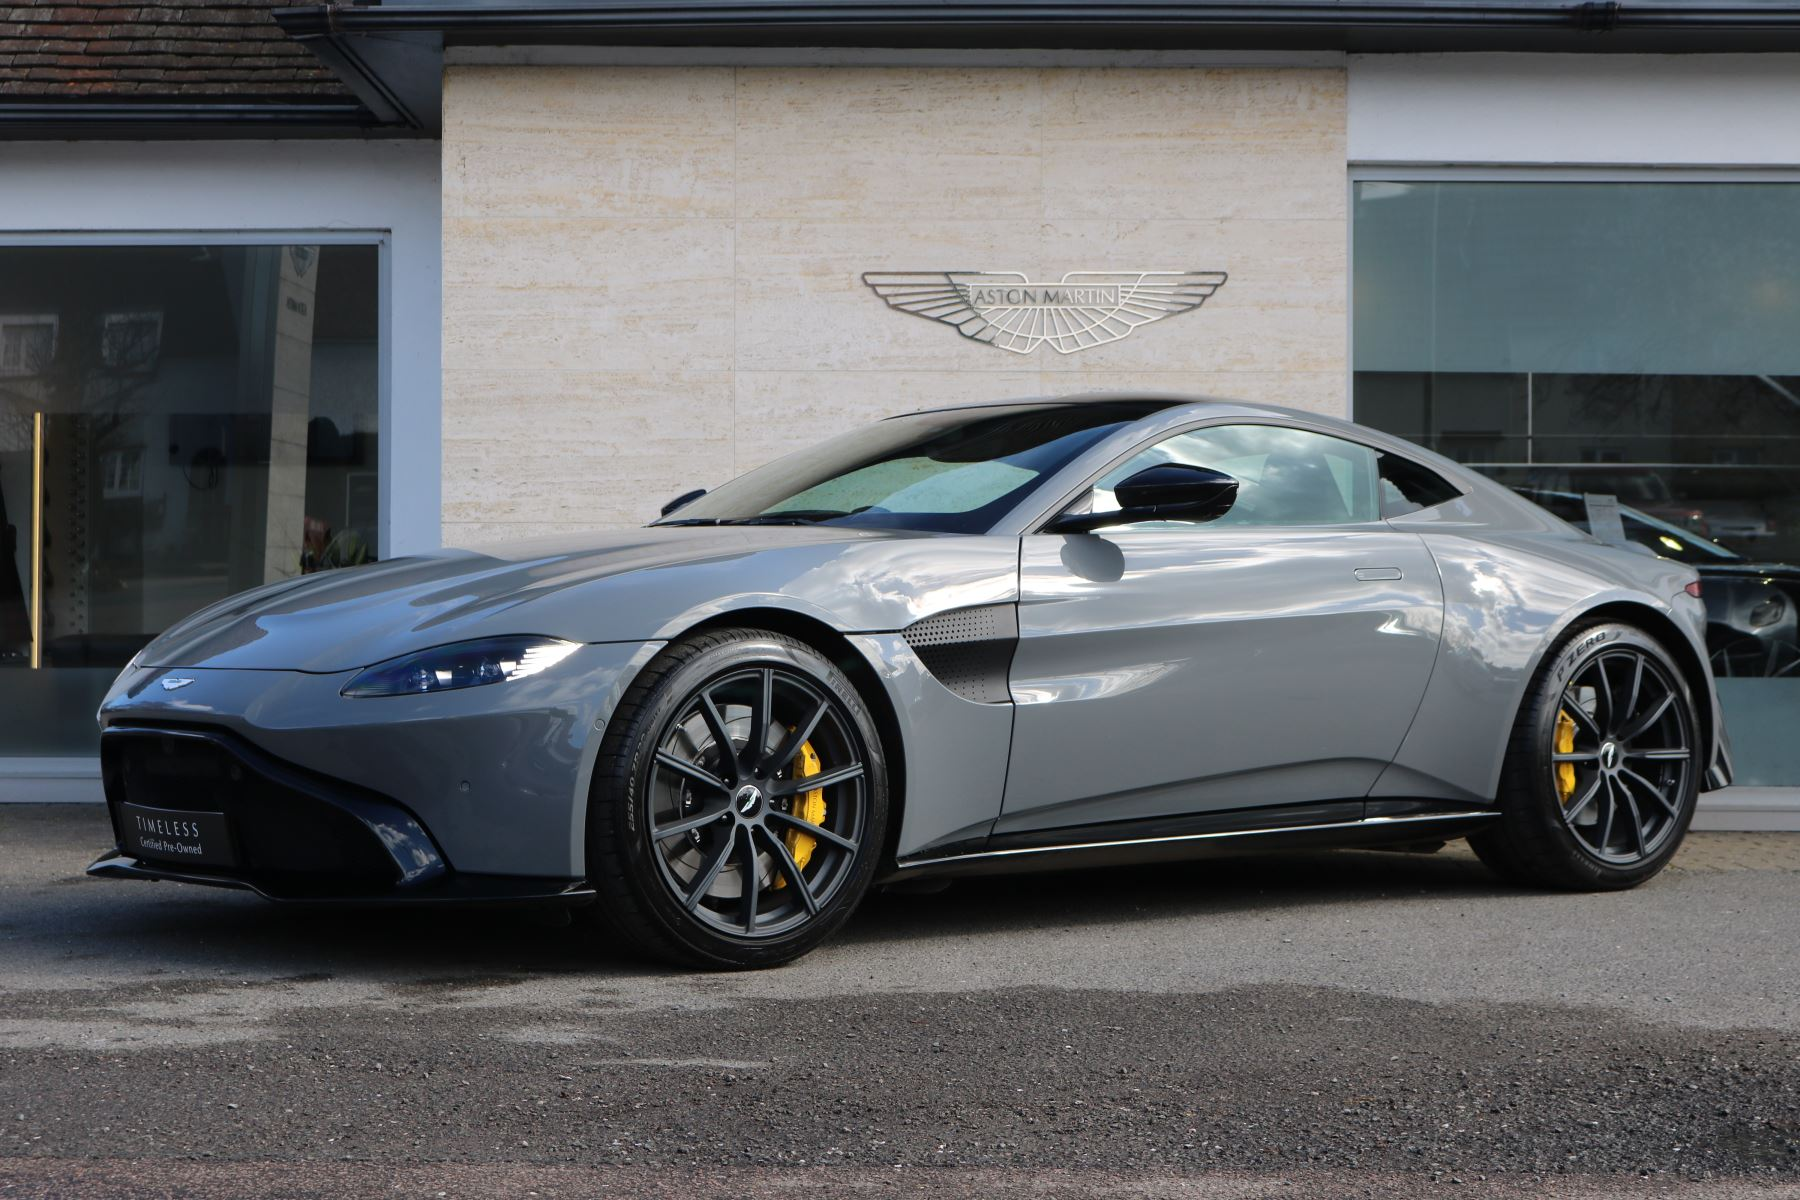 Aston Martin V8 Vantage Coupe 2dr ZF 8 Speed 4.0 Automatic 3 door Coupe (2018) image